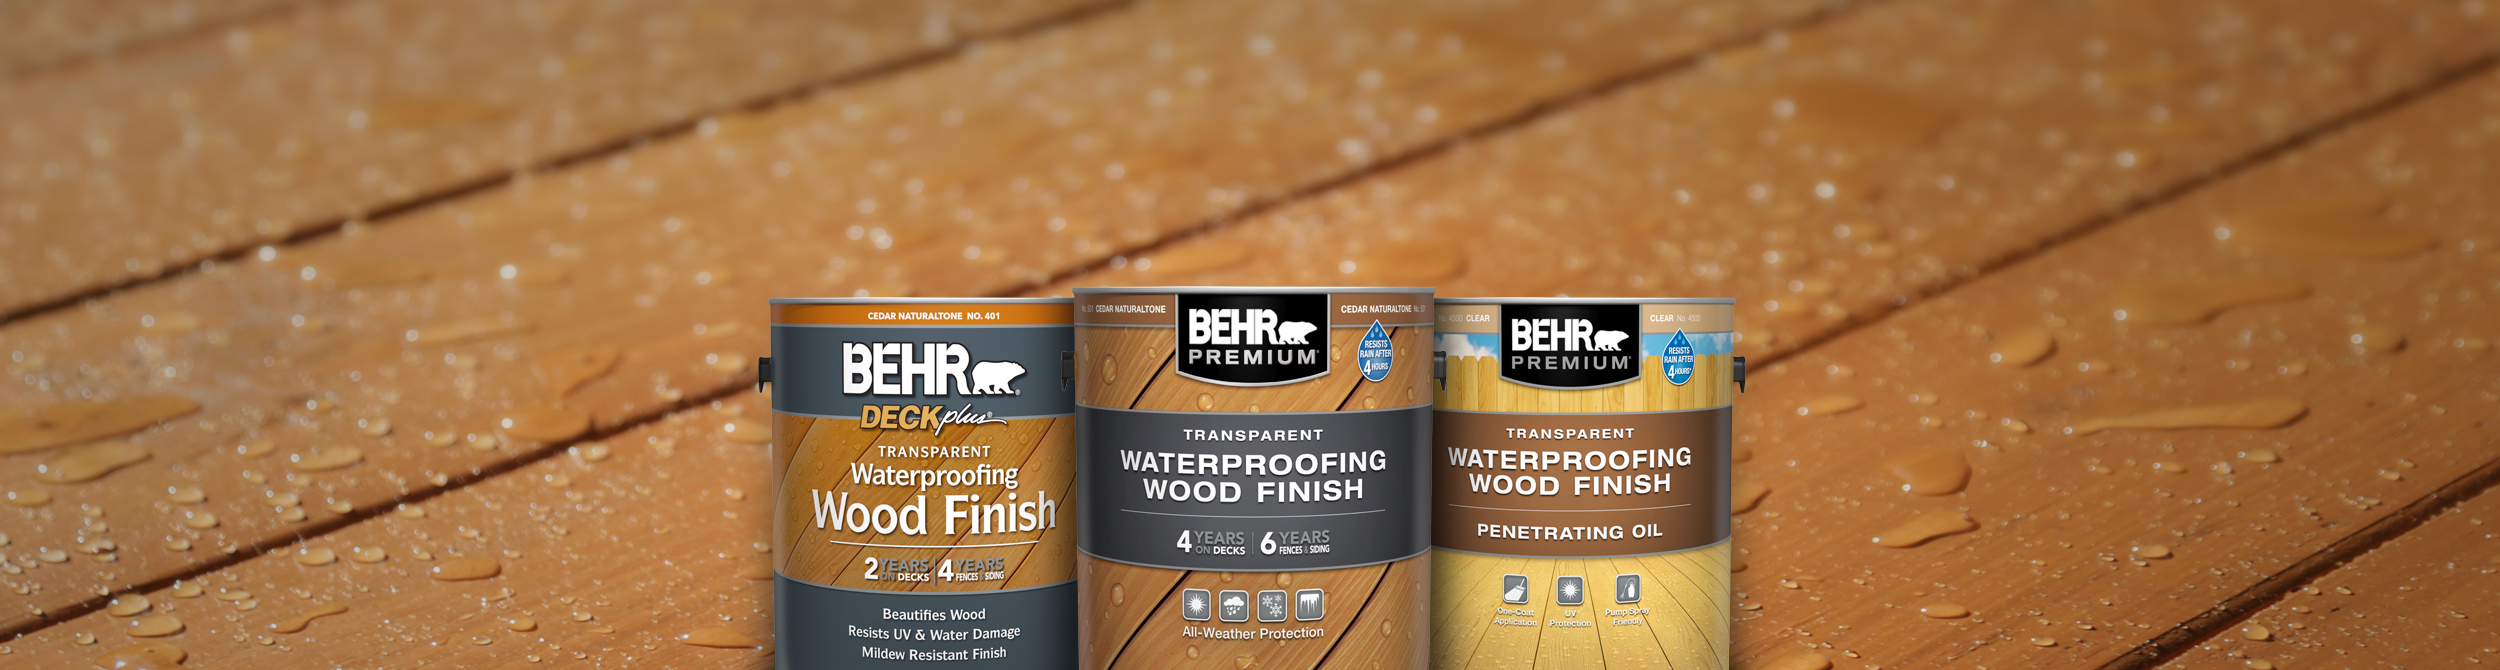 3 Behr Transparent Stains against a wood deck.